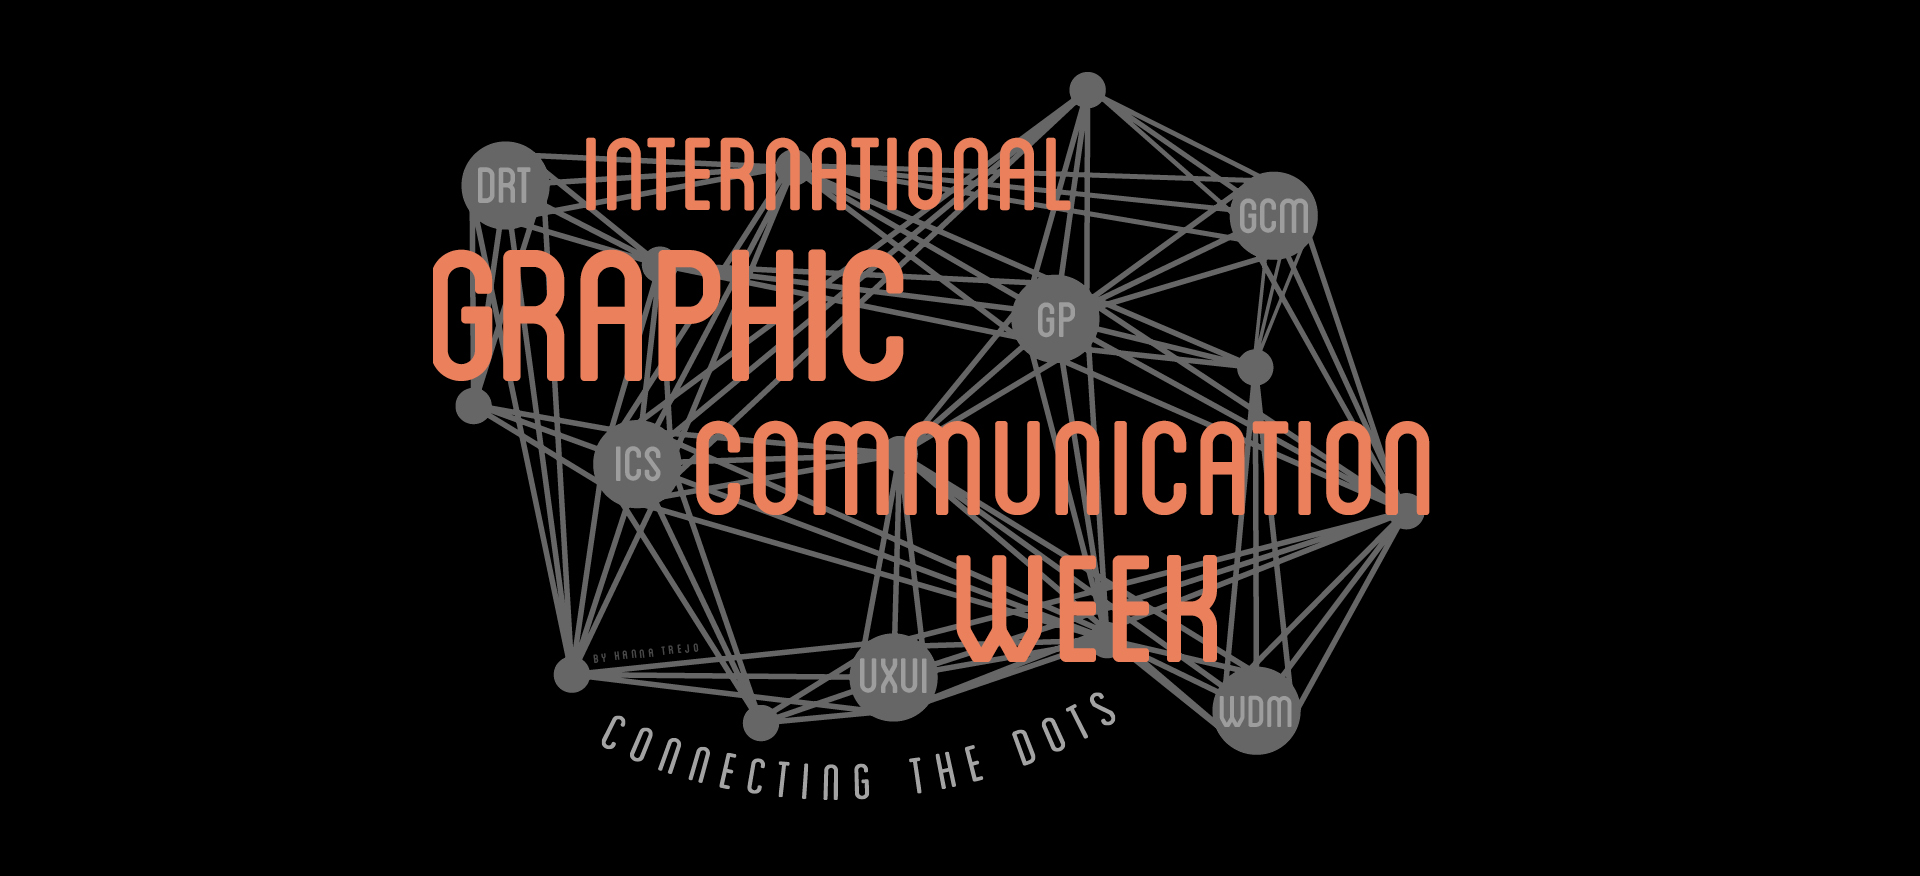 International Graphic Communication Week Logo 2017